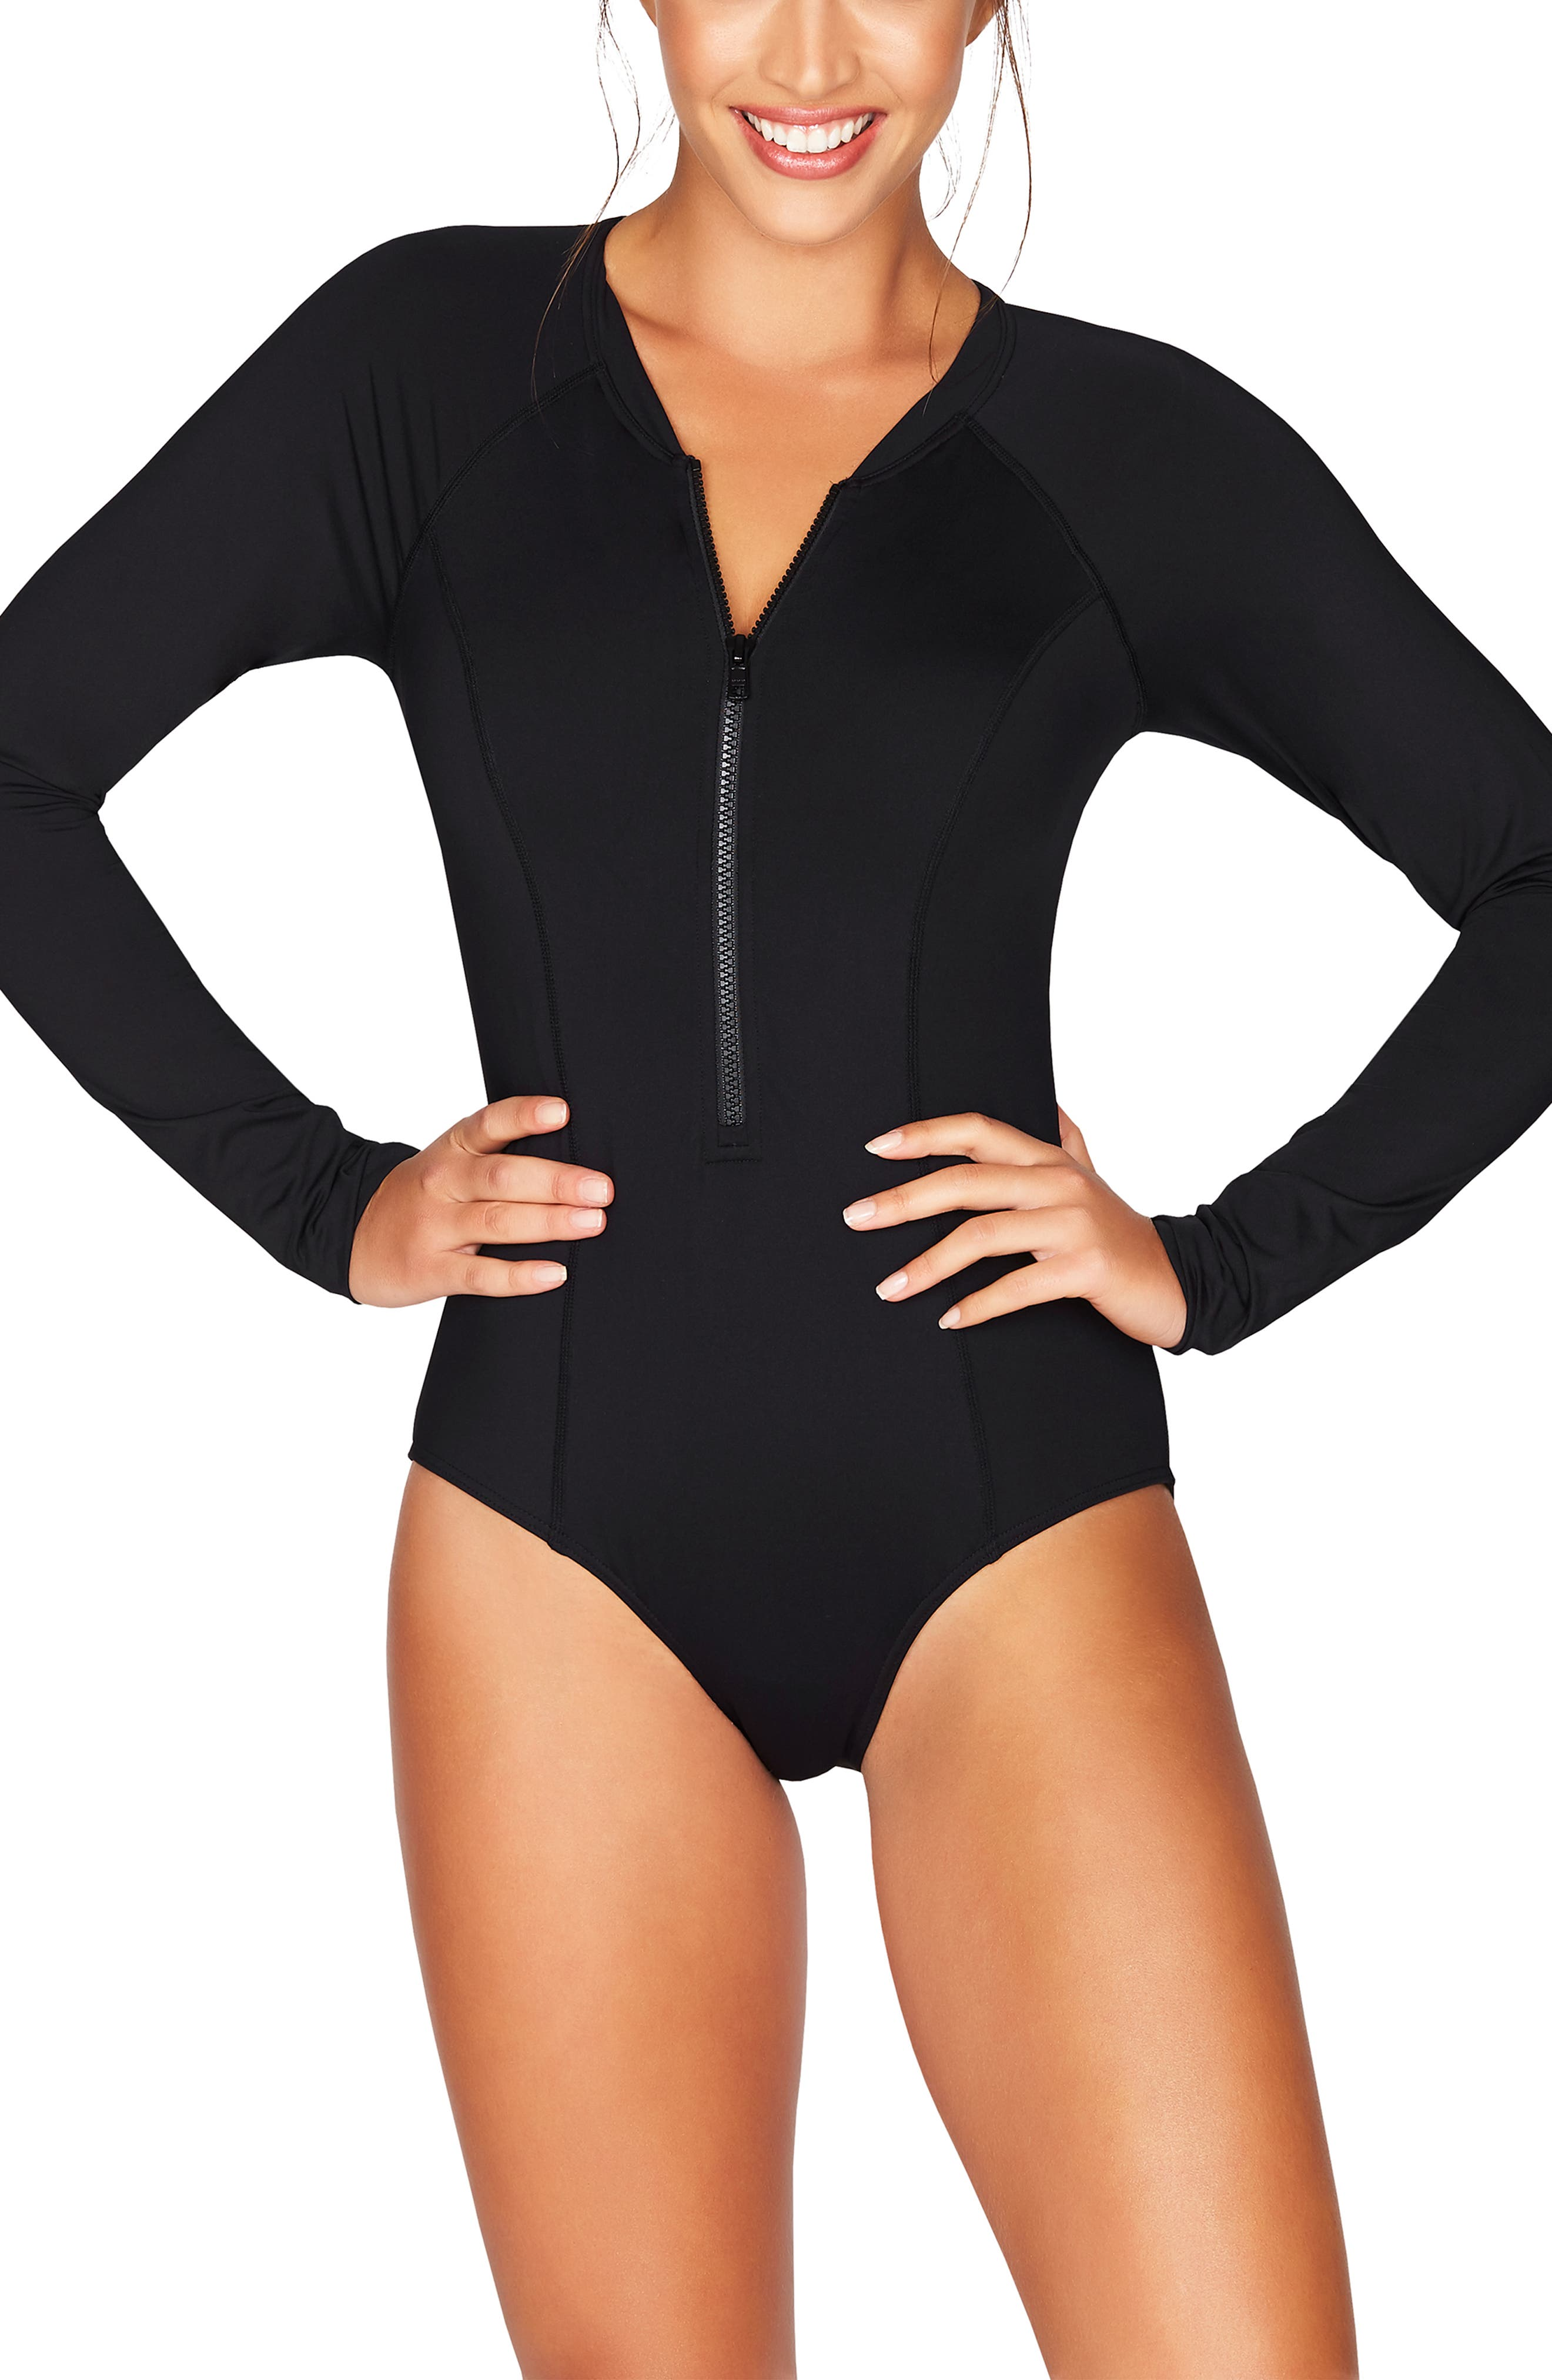 Sleek and sophisticated, this long-sleeved swimsuit is styled with a tonal front zip and power-mesh support. Style Name: Sea Level Front Zip One-Piece Swimsuit. Style Number: 5809999. Available in stores.